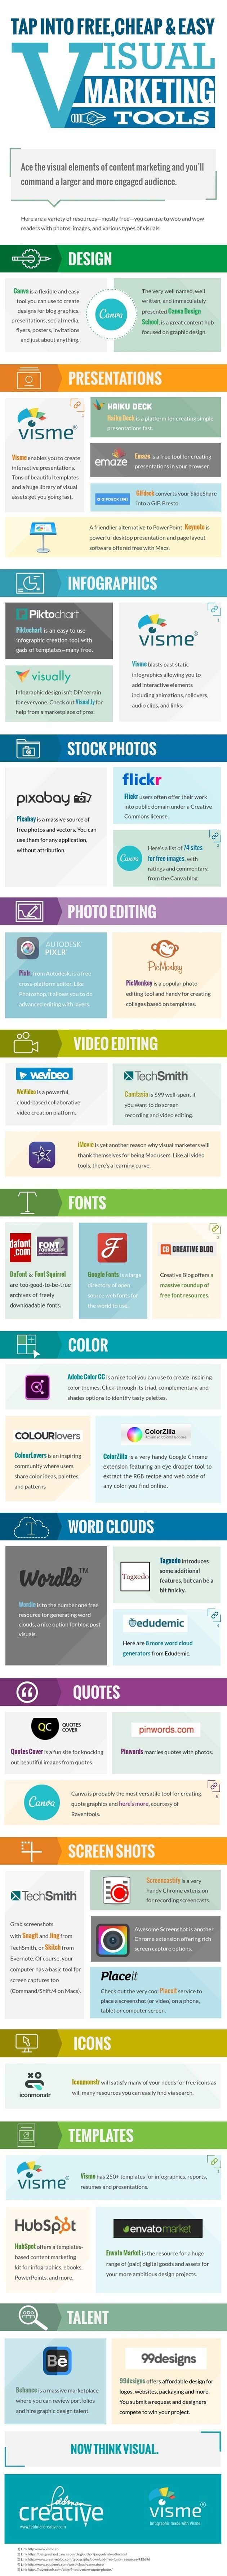 22373 best infographics images on pinterest digital marketing tap into free cheap and easy visual marketing tools infographic fandeluxe Gallery